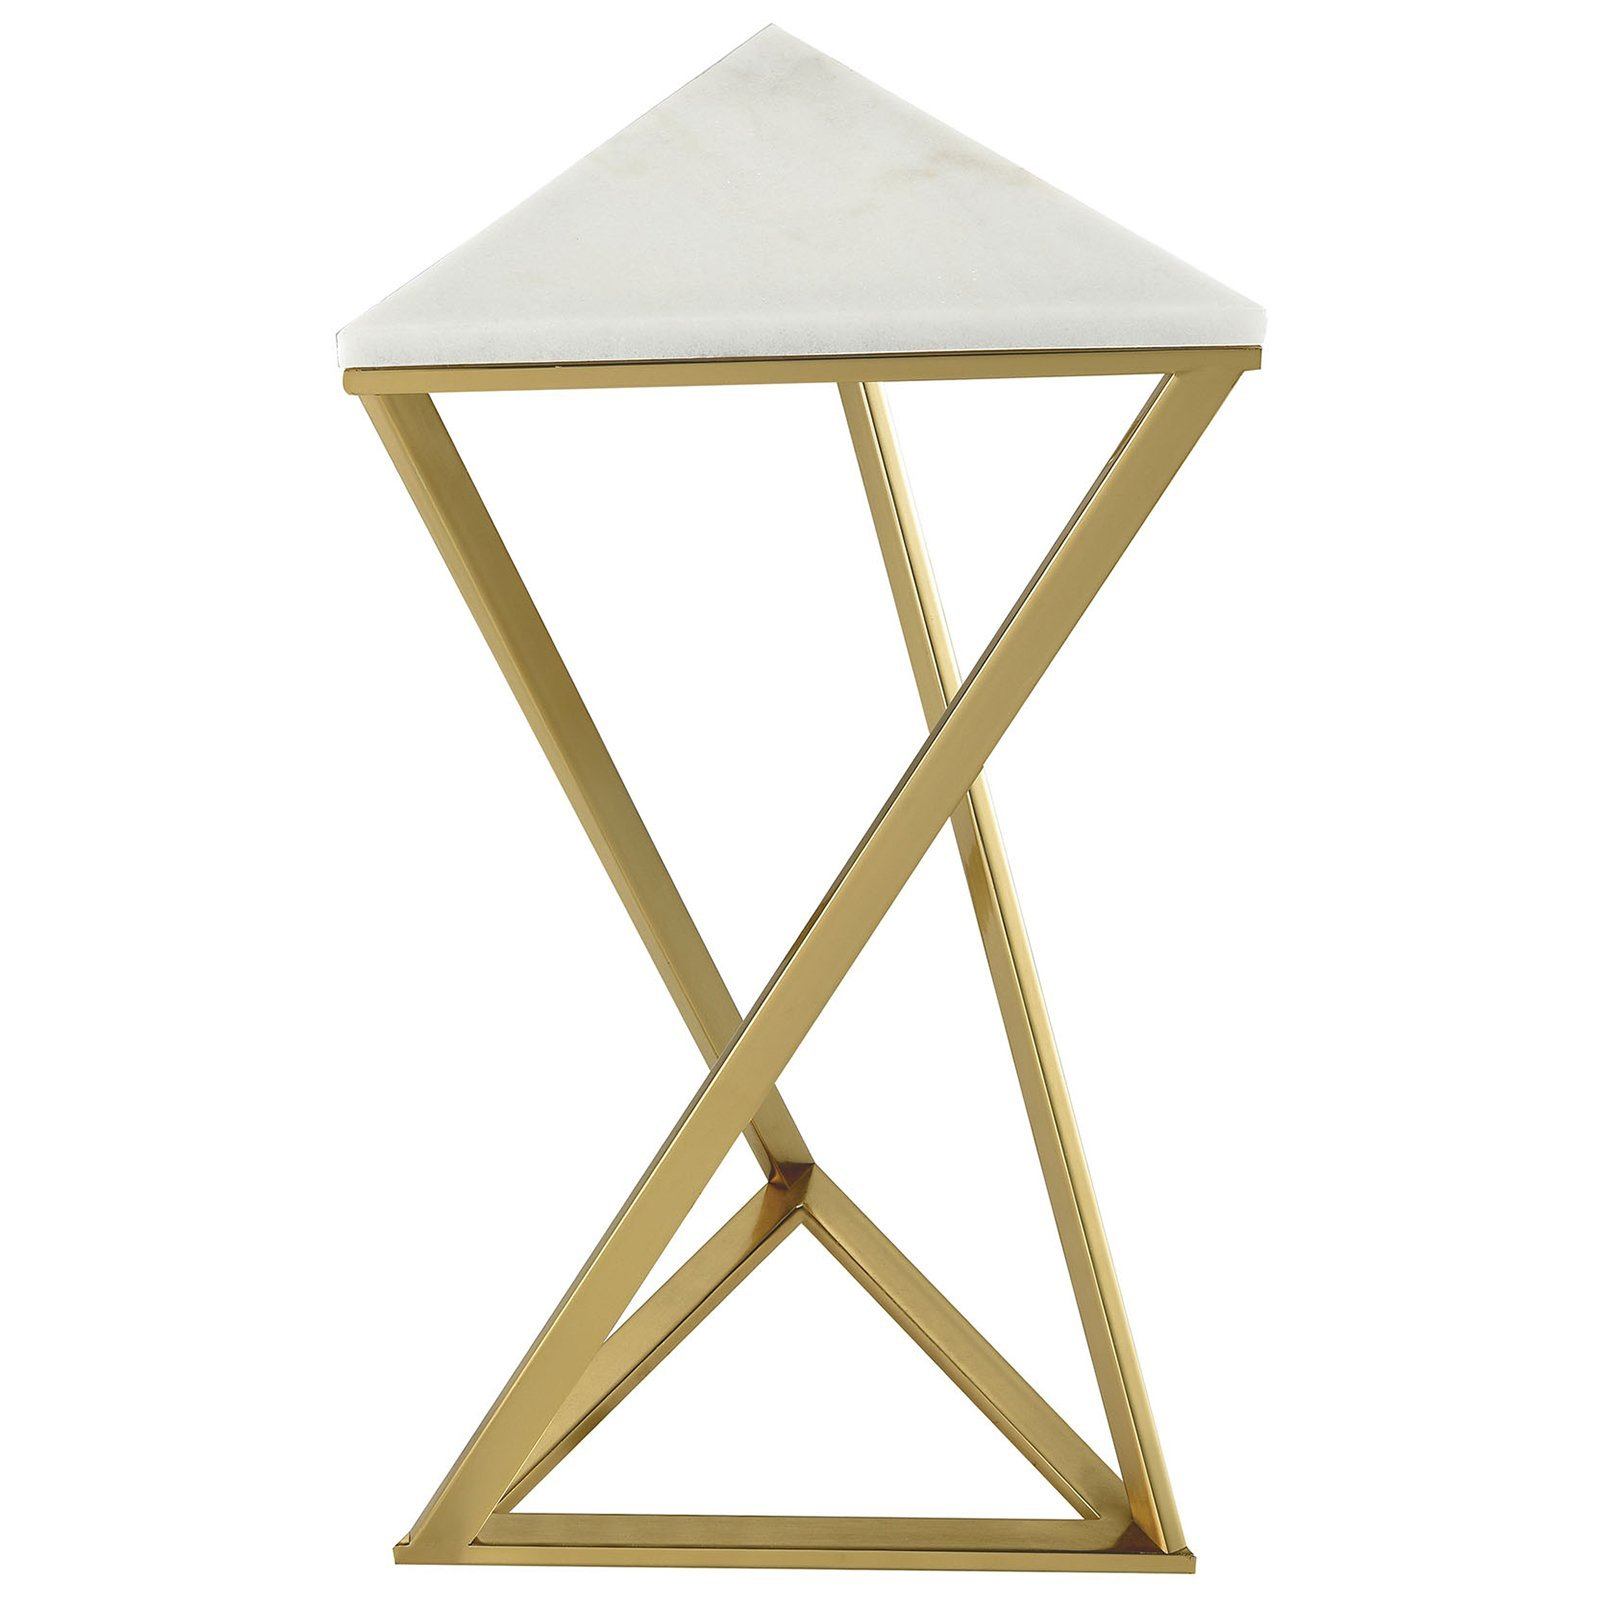 garde contemporary accent tables white fratantoni lifestyles marble top table gold plated metal with genuine outdoor wicker storage green bedside lamps cordless pottery barn